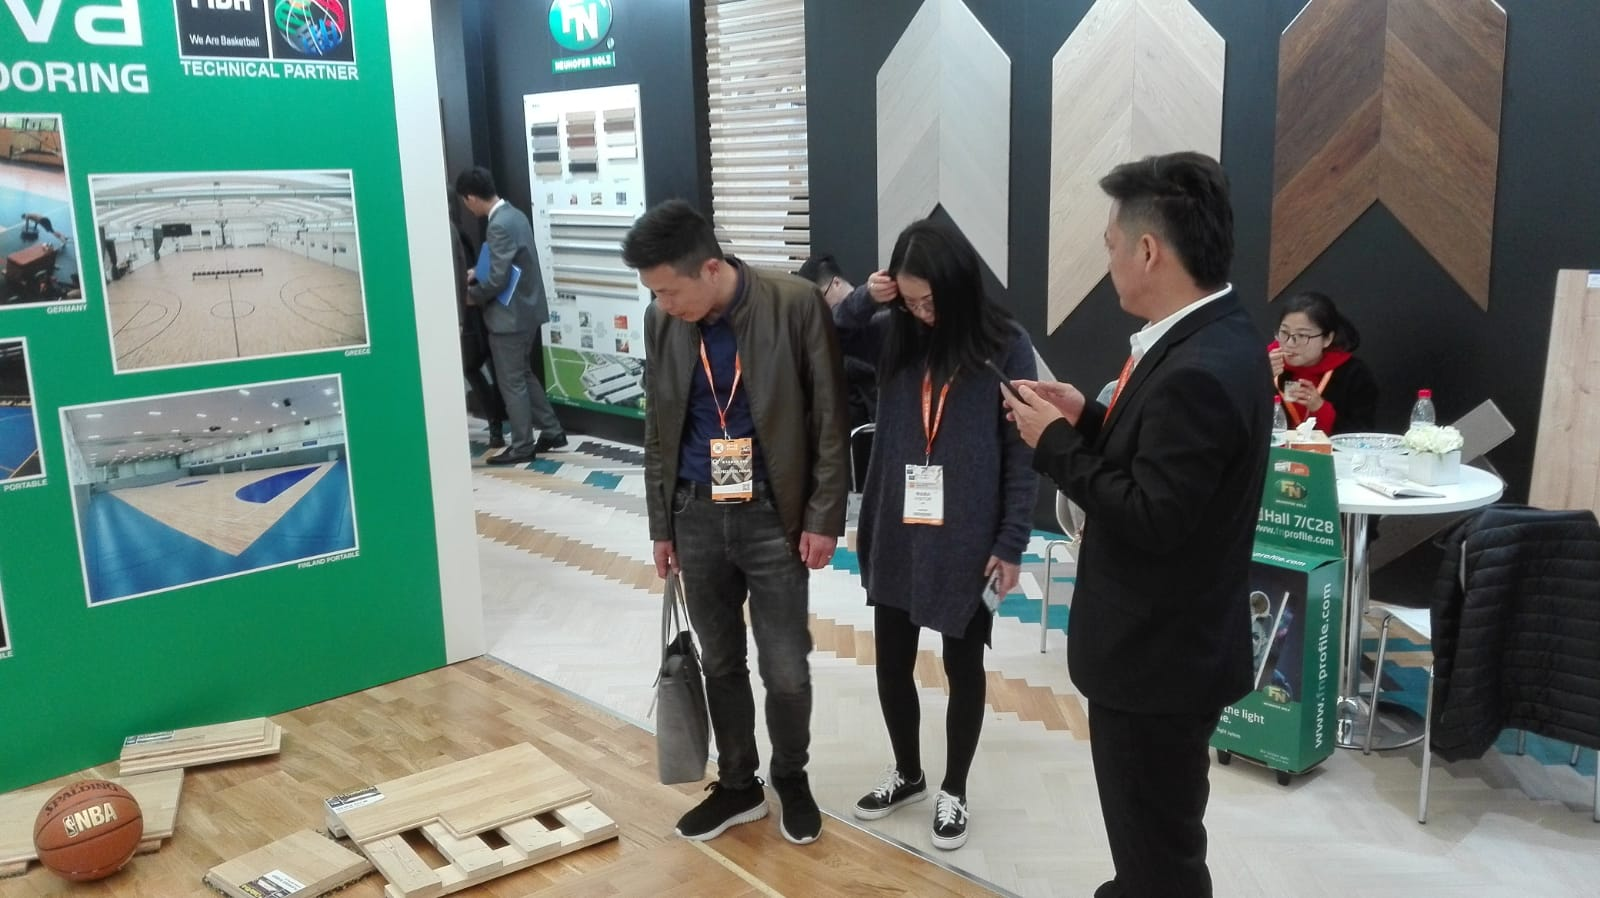 Considerable interest in DR products by the Asian public